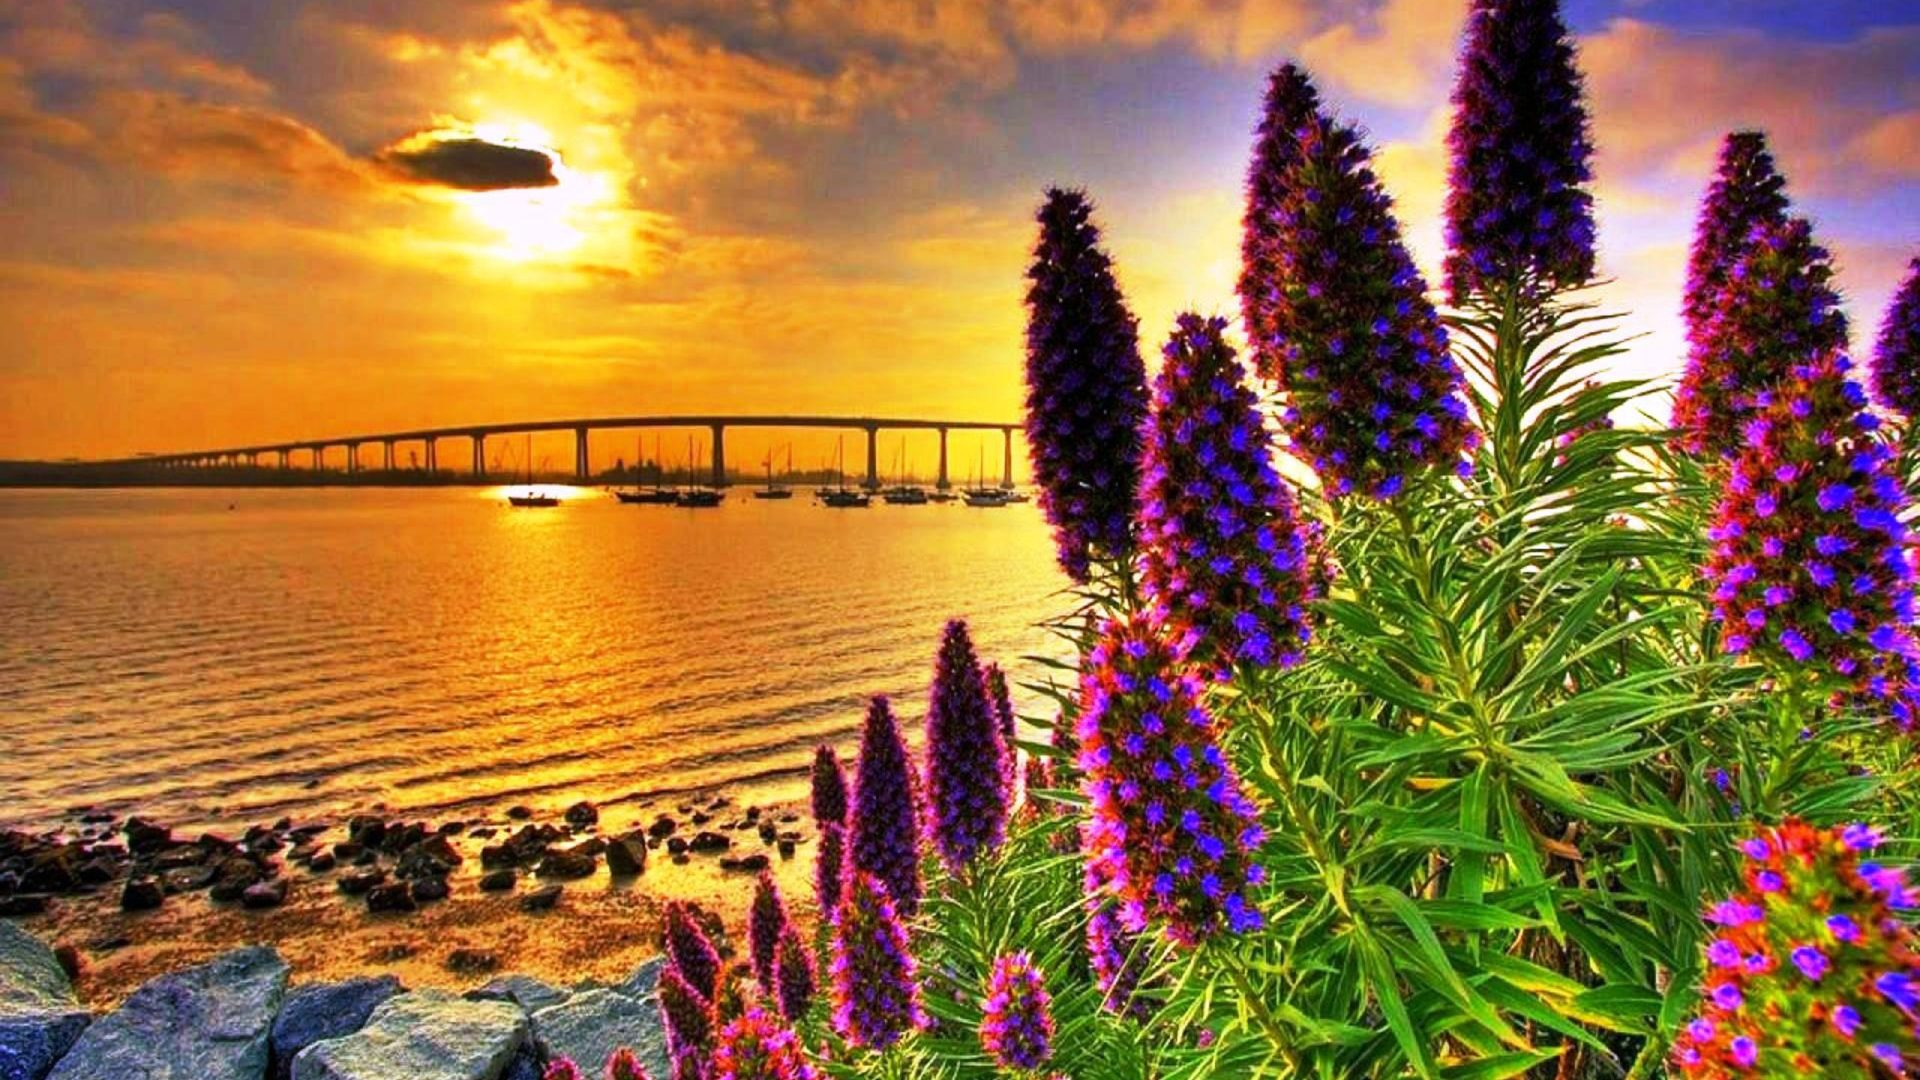 3d Flowers Wallpapers For Pc Coastal Flowers In Sunset Hd Wallpaper 604544